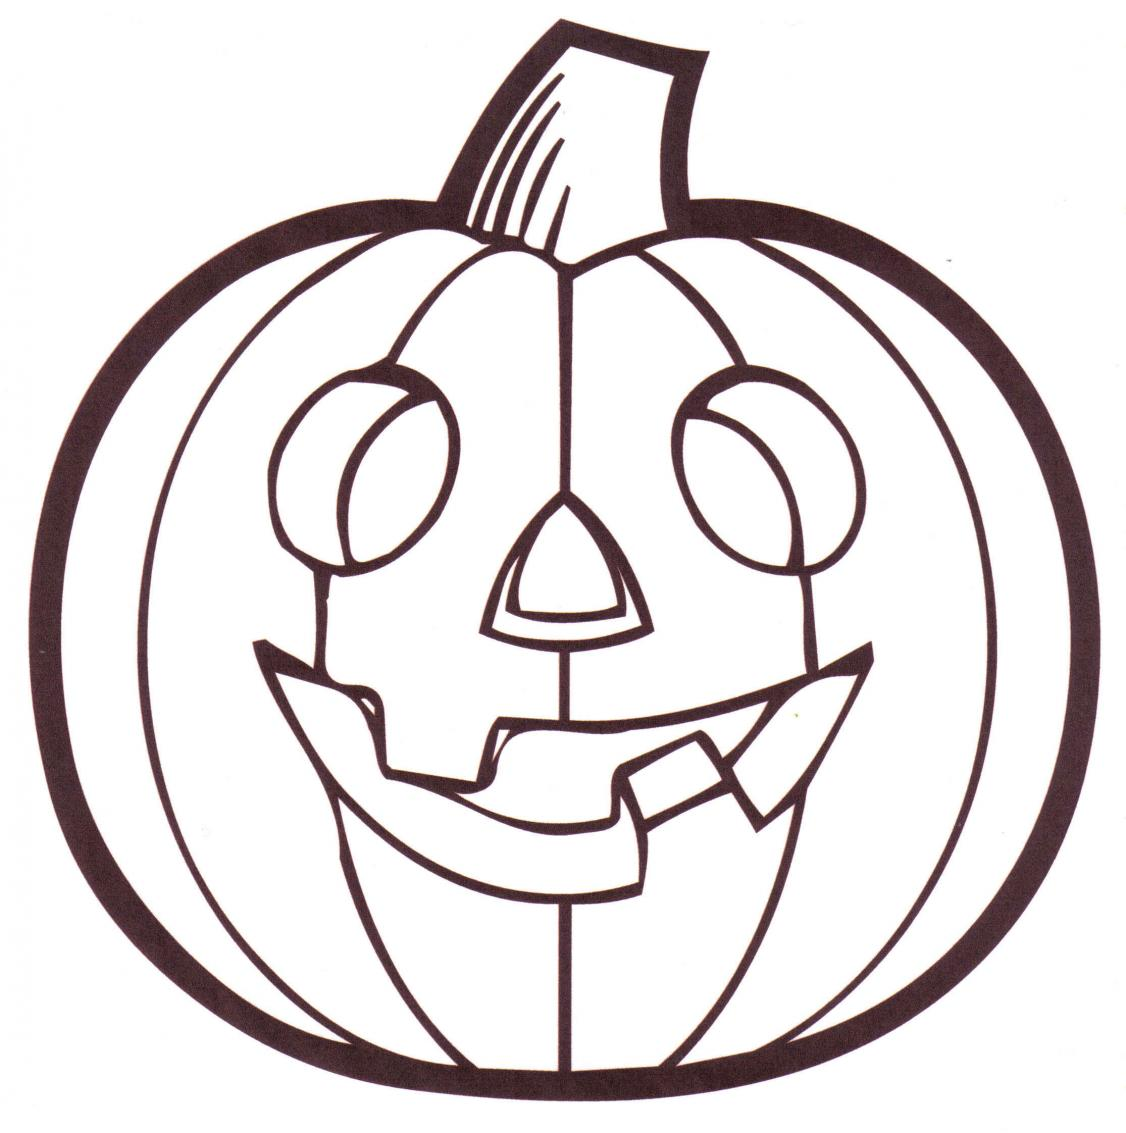 Coloring Pages Halloween Pumpkins Coloring Pages free printable pumpkin coloring pages for kids halloween page